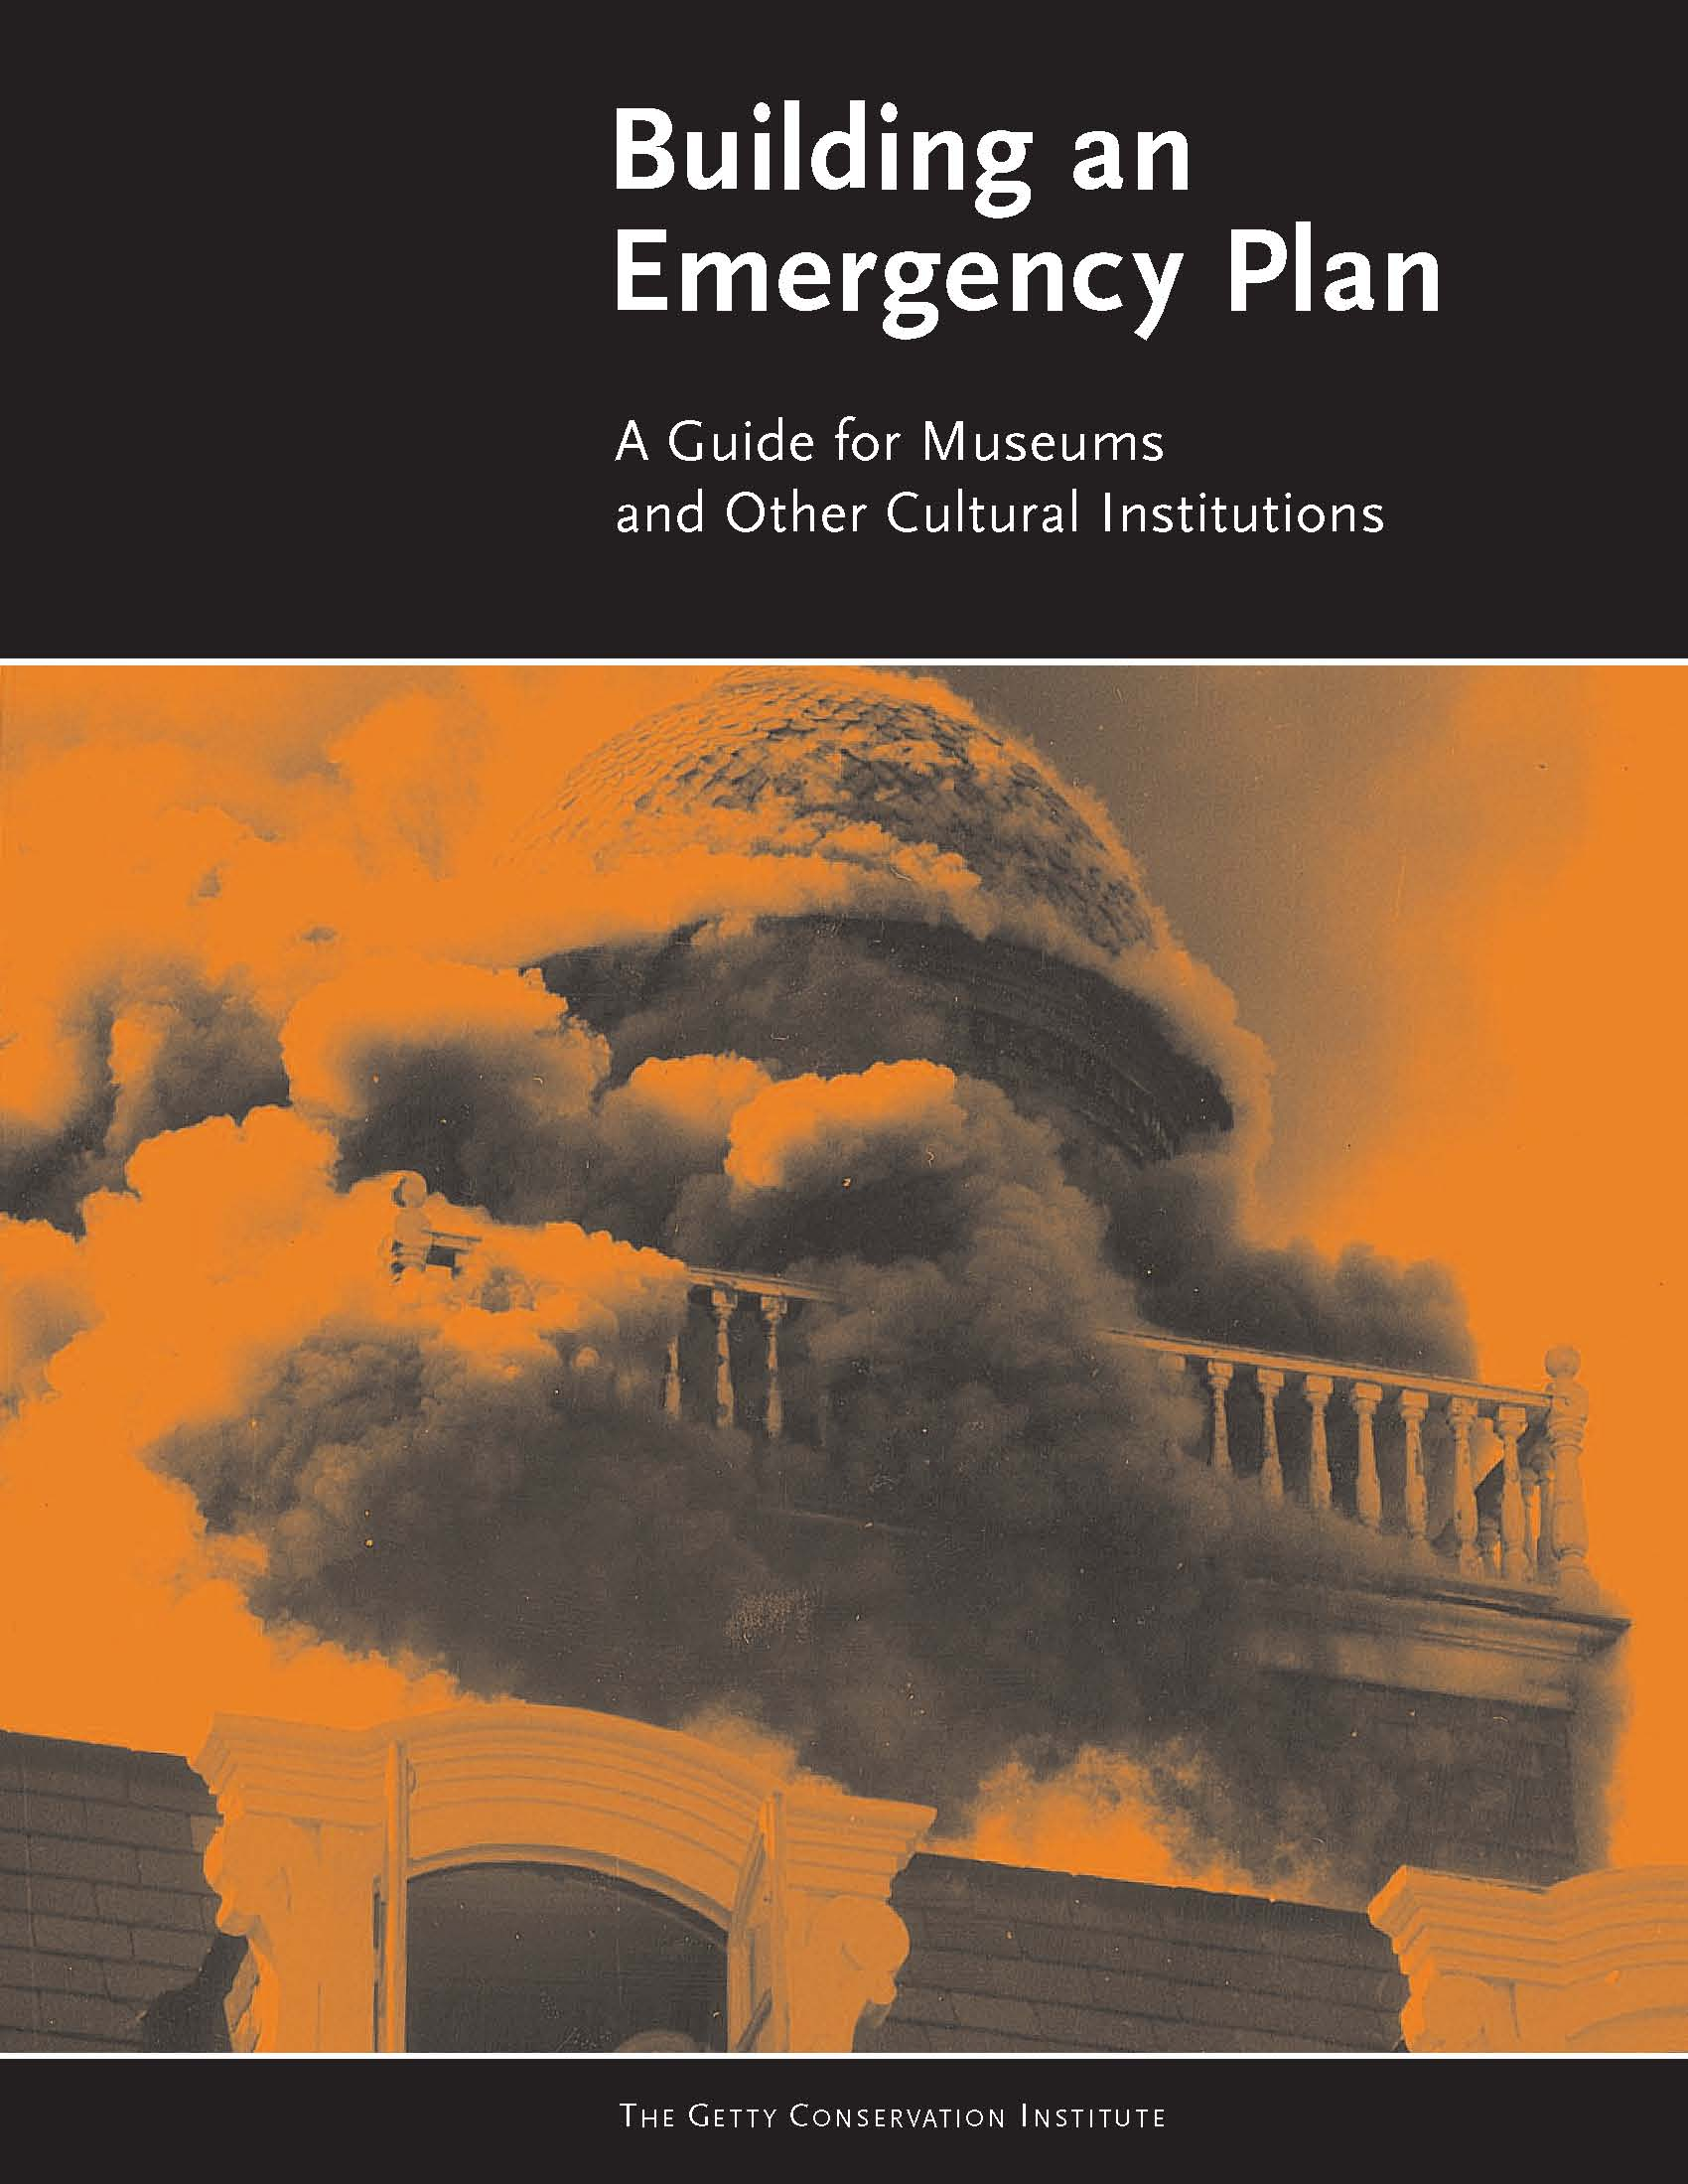 Building and emergency plan